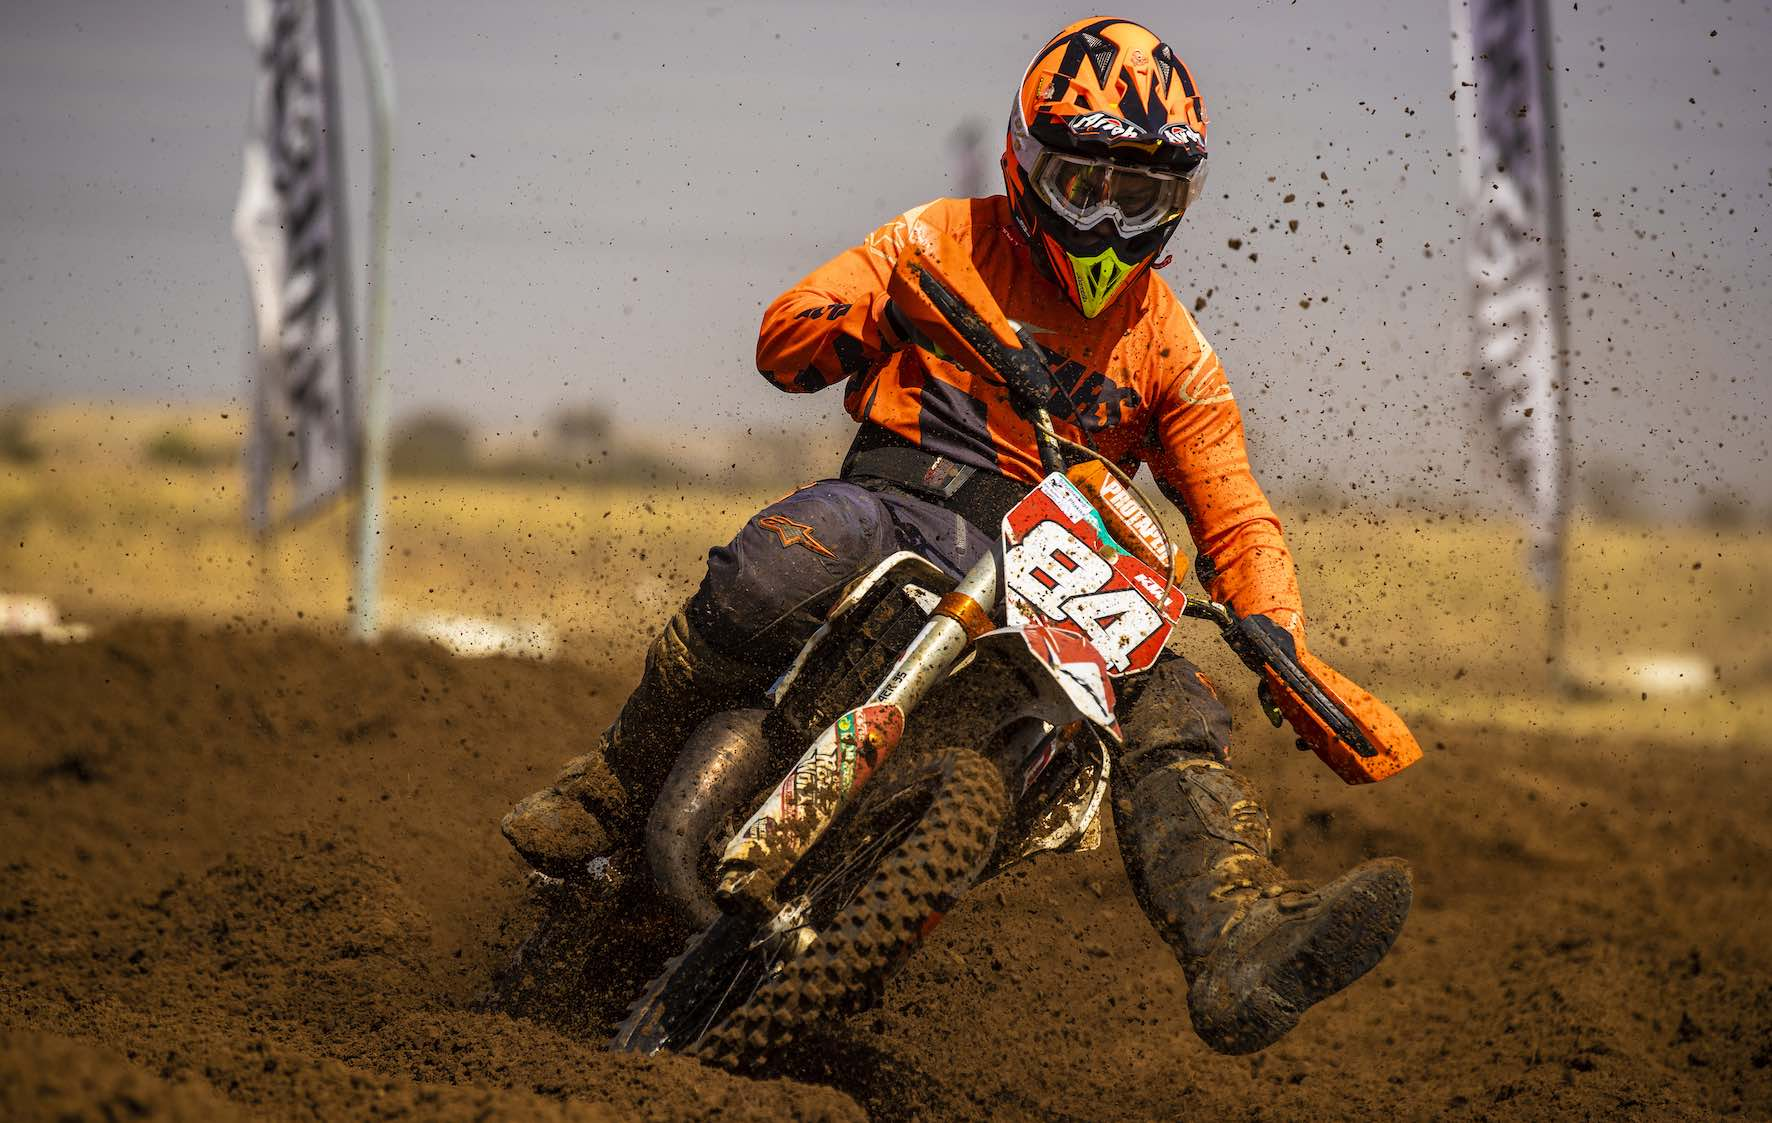 Leonard du Toit racing the penultimate round of the 2019 South African Motocross National in Welkom